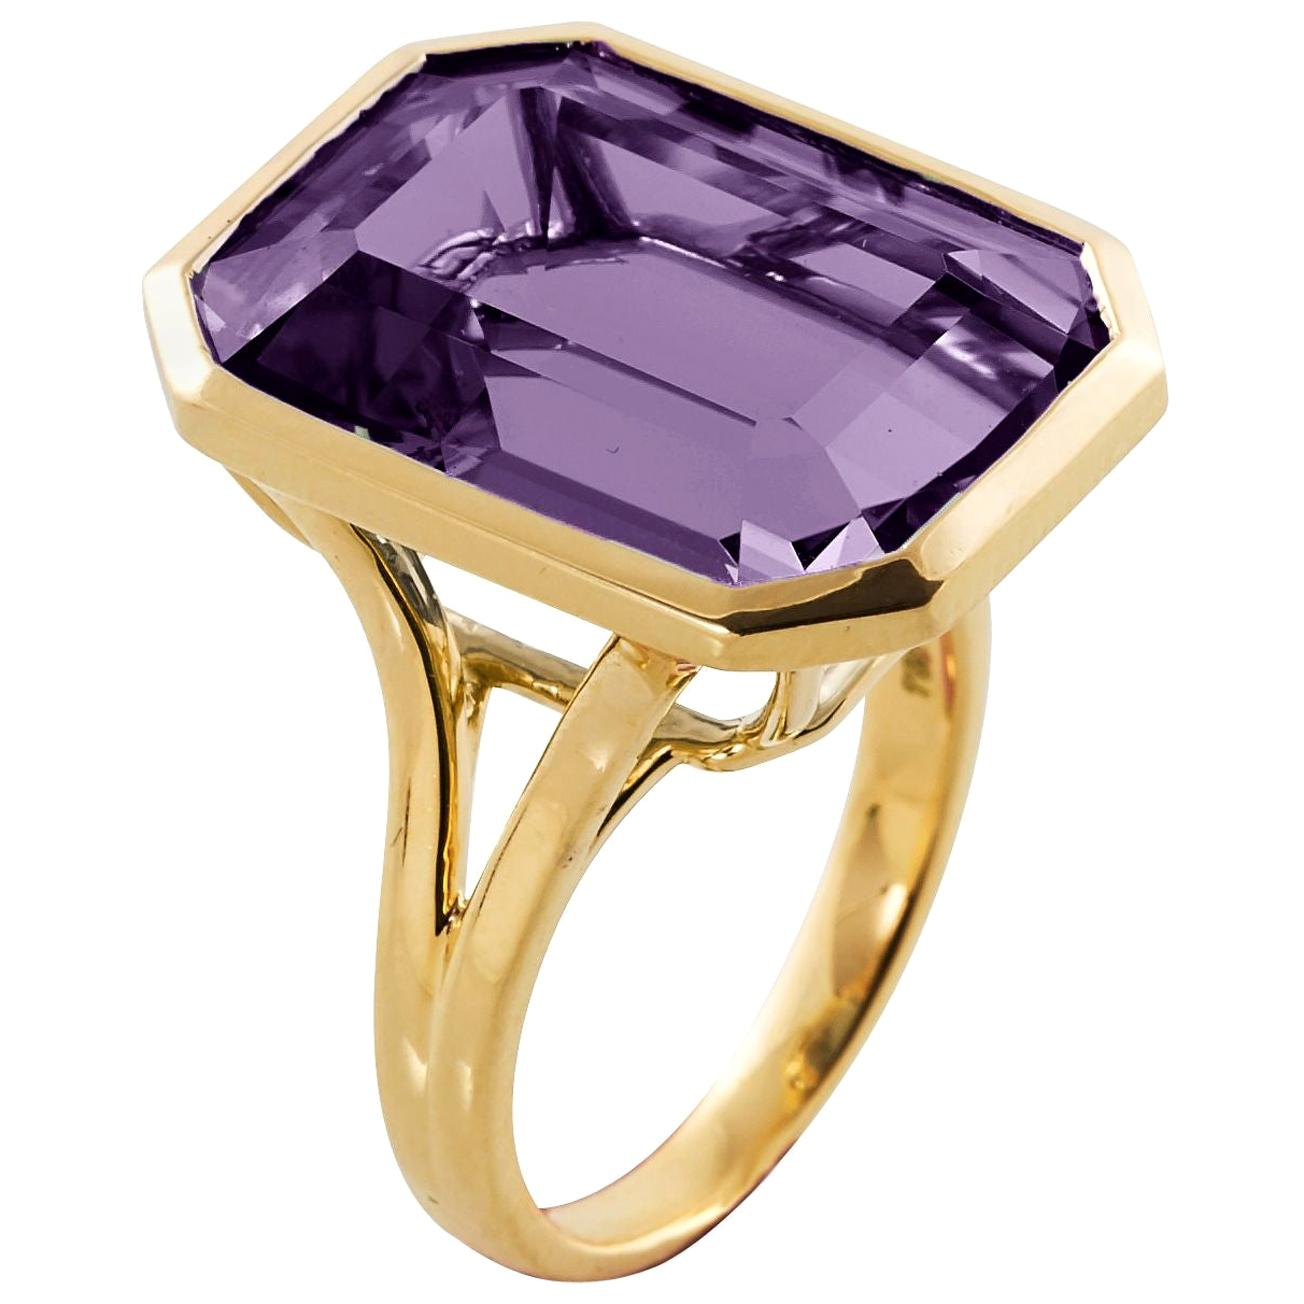 Goshwara Emerald Cut Amethyst  Ring